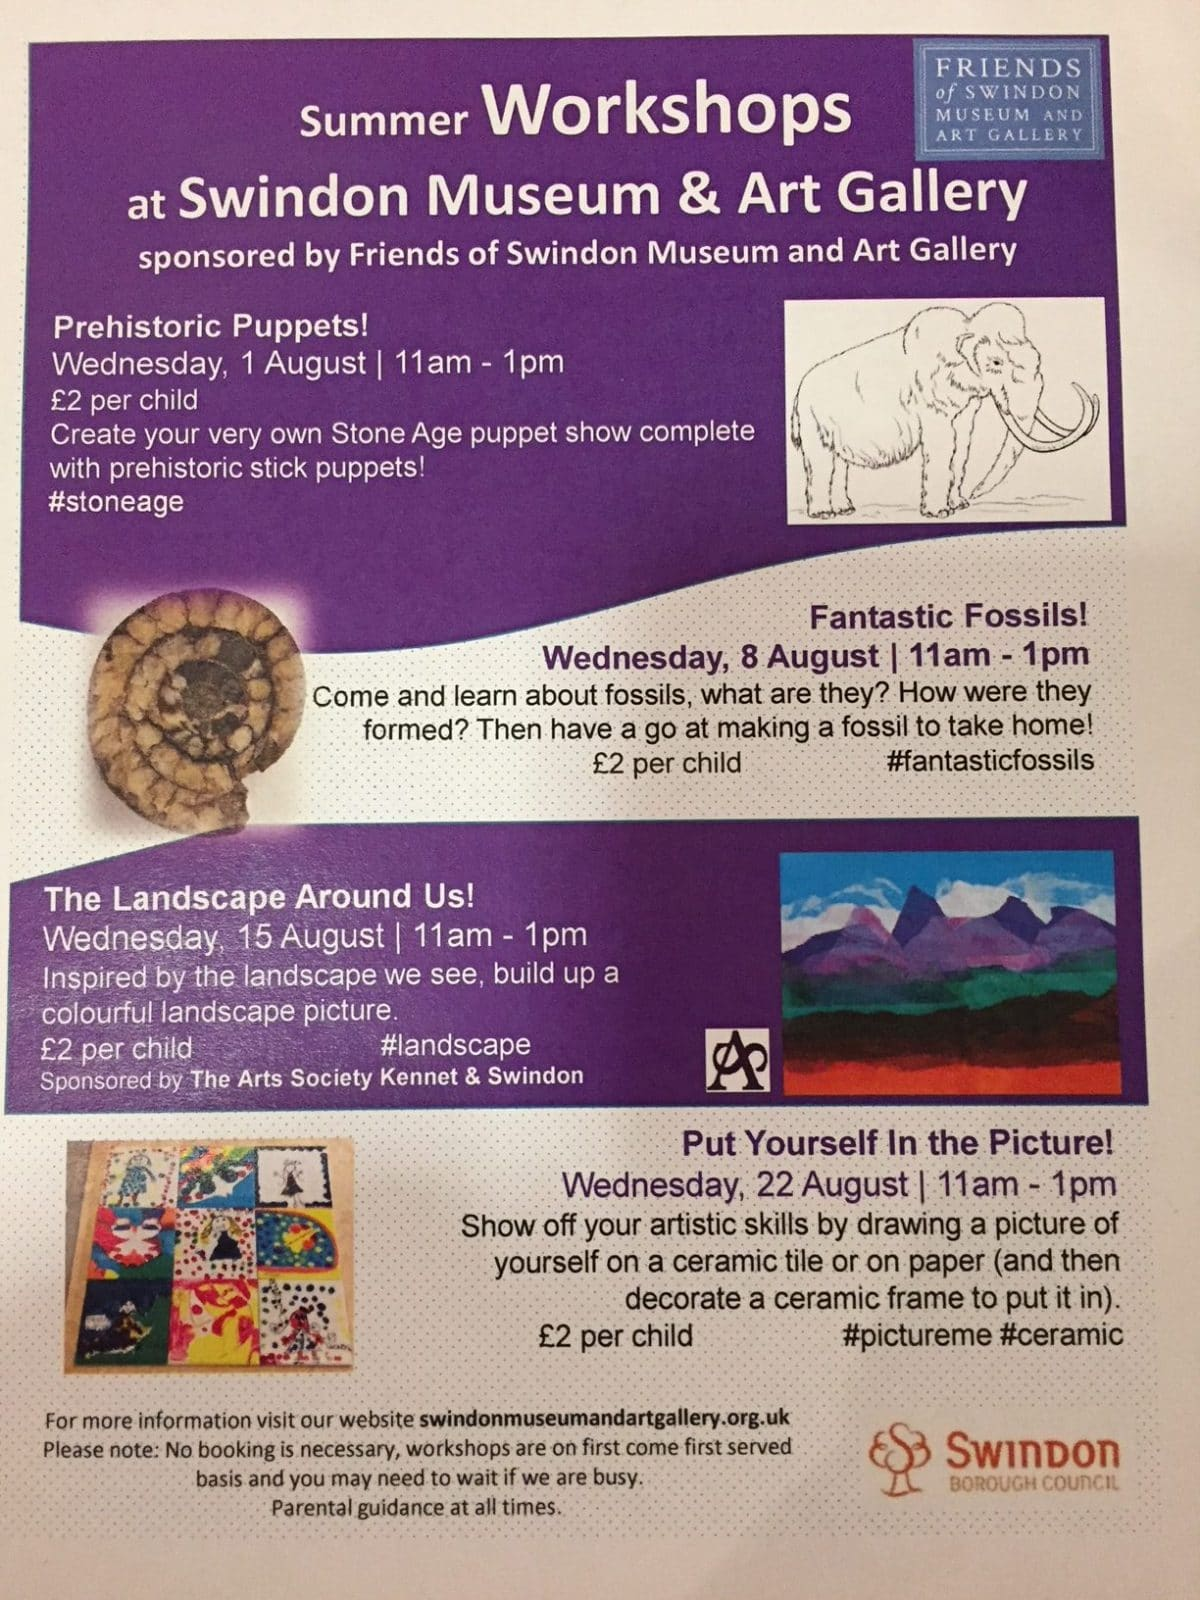 Event: Summer Workshops at Swindon's Museum and Art Gallery